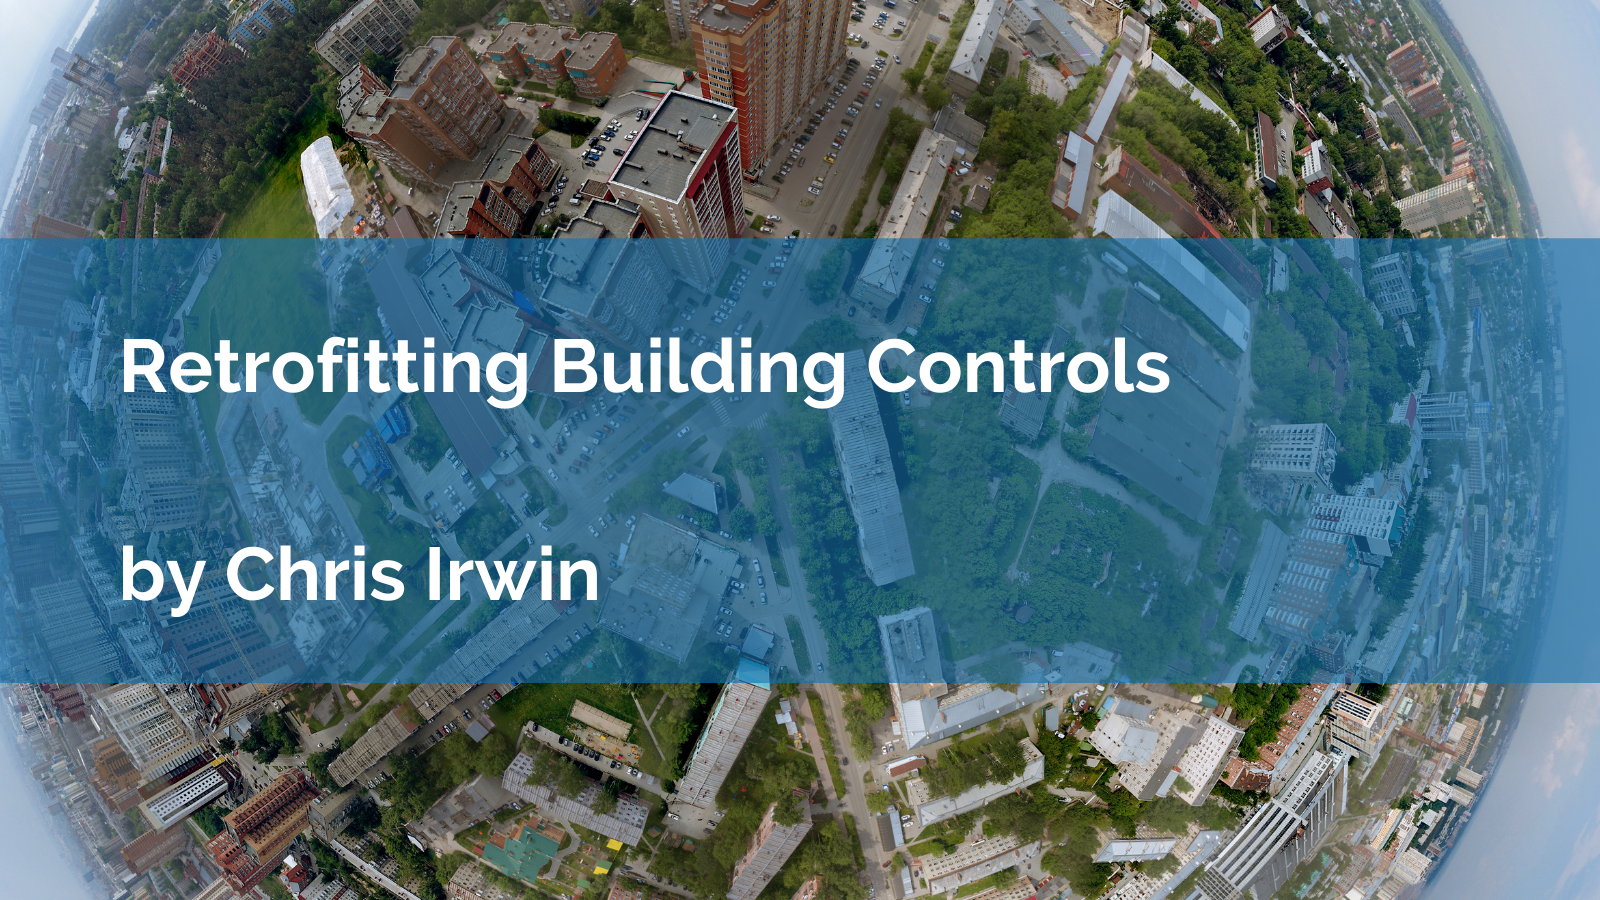 Retrofitting Building Controls: Reduce carbon emissions and save costs